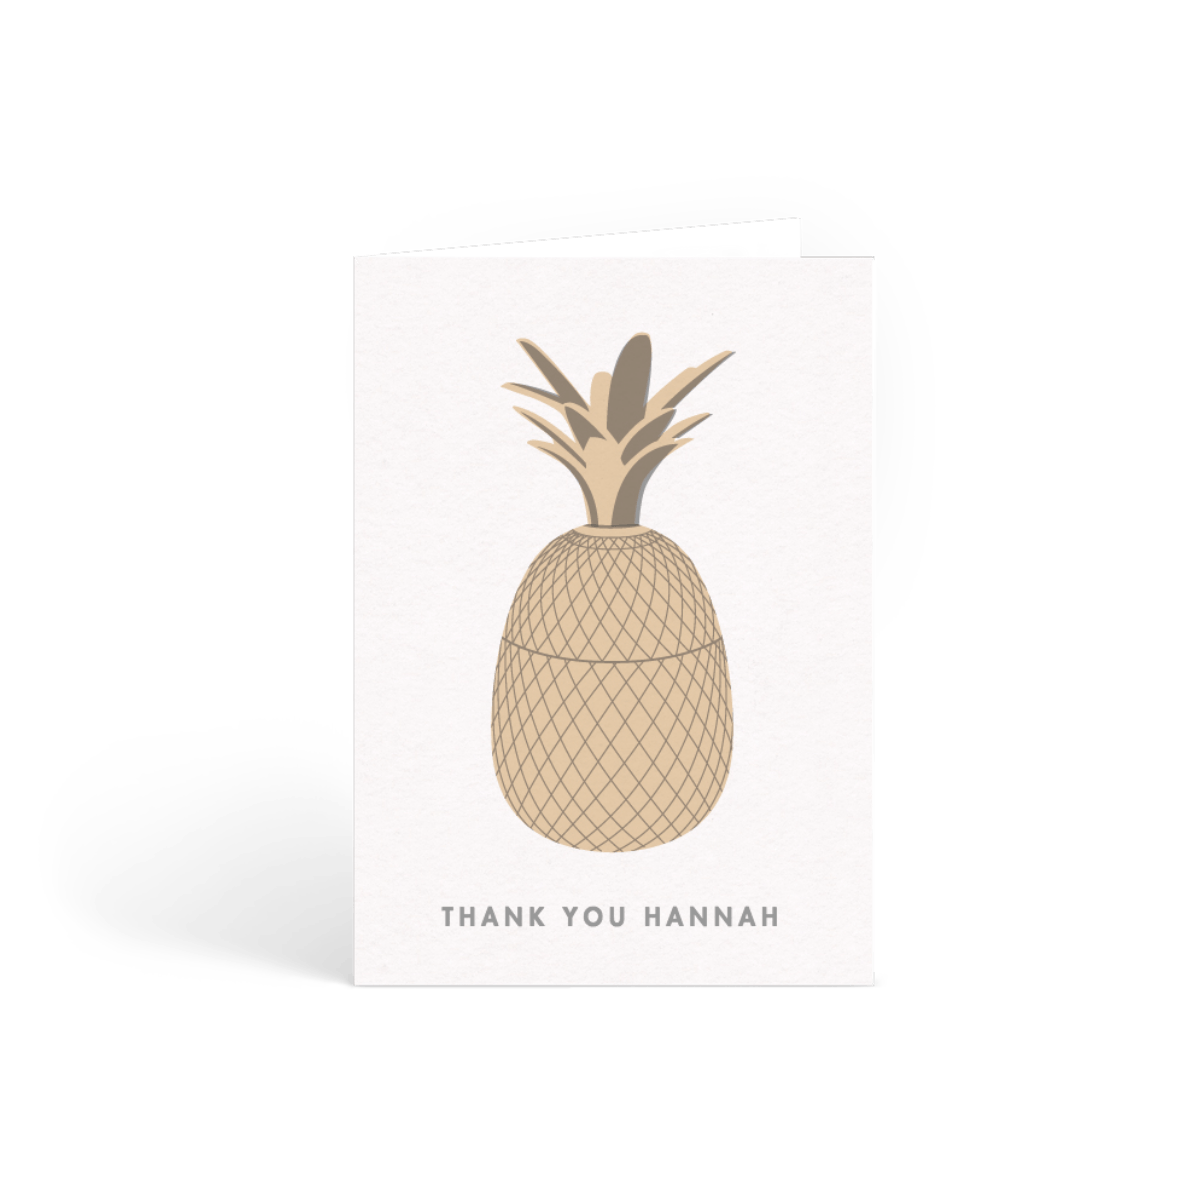 Https%3a%2f%2fwww.papier.com%2fproduct image%2f917%2f2%2fgolden pineapple 263 front 1453909580.png?ixlib=rb 1.1